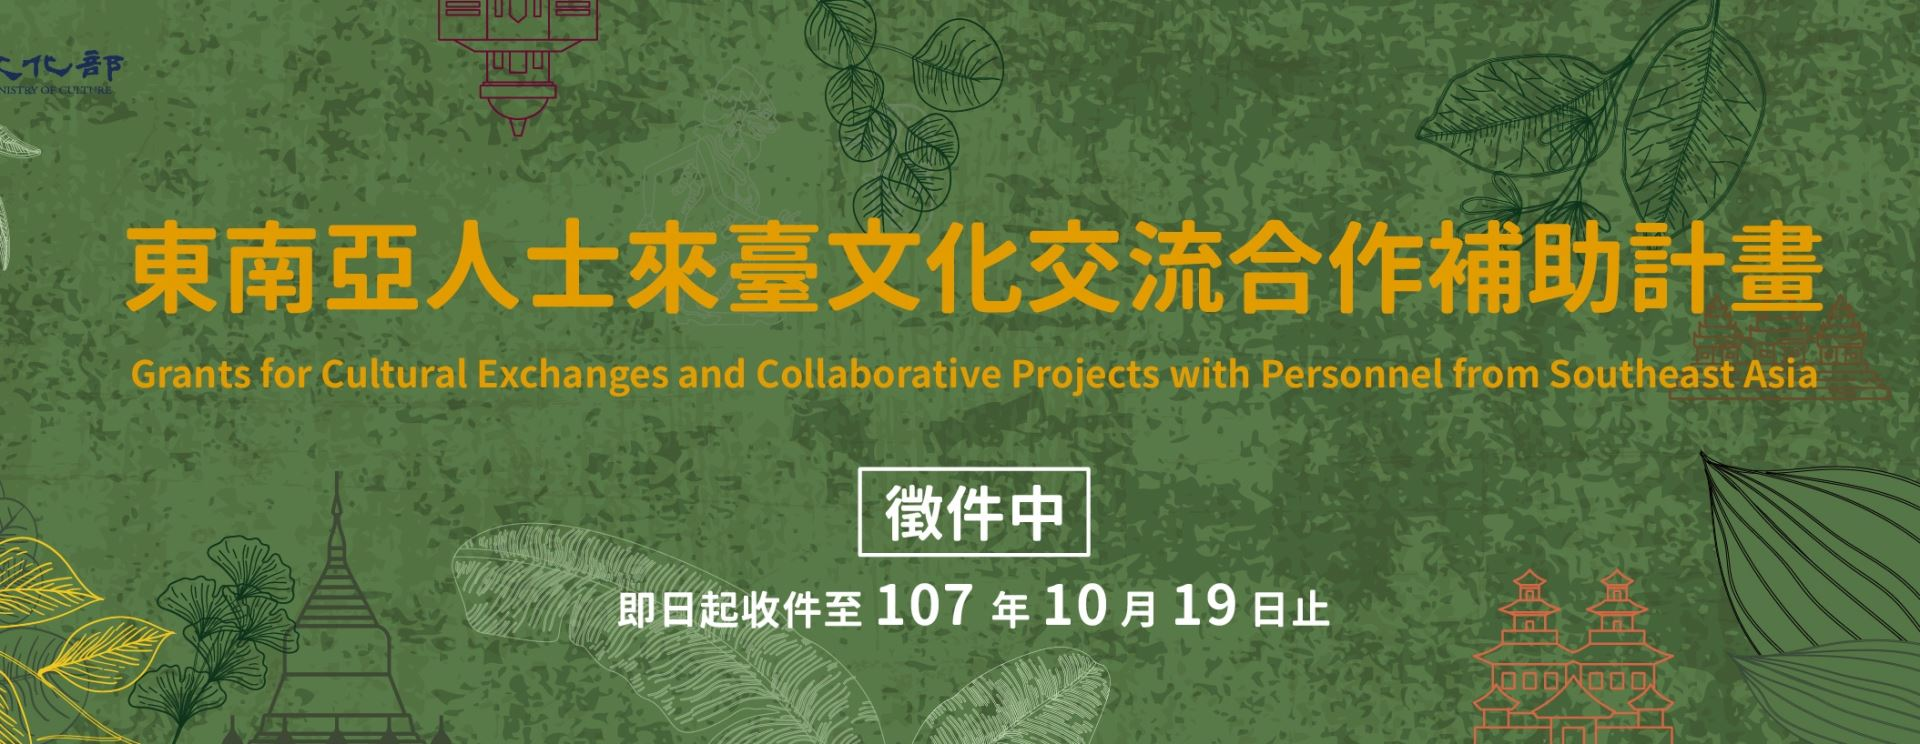 Grants for Cultural Exchanges and Collaborative Projects with Personnel from Southeast Asia [另開新視窗]